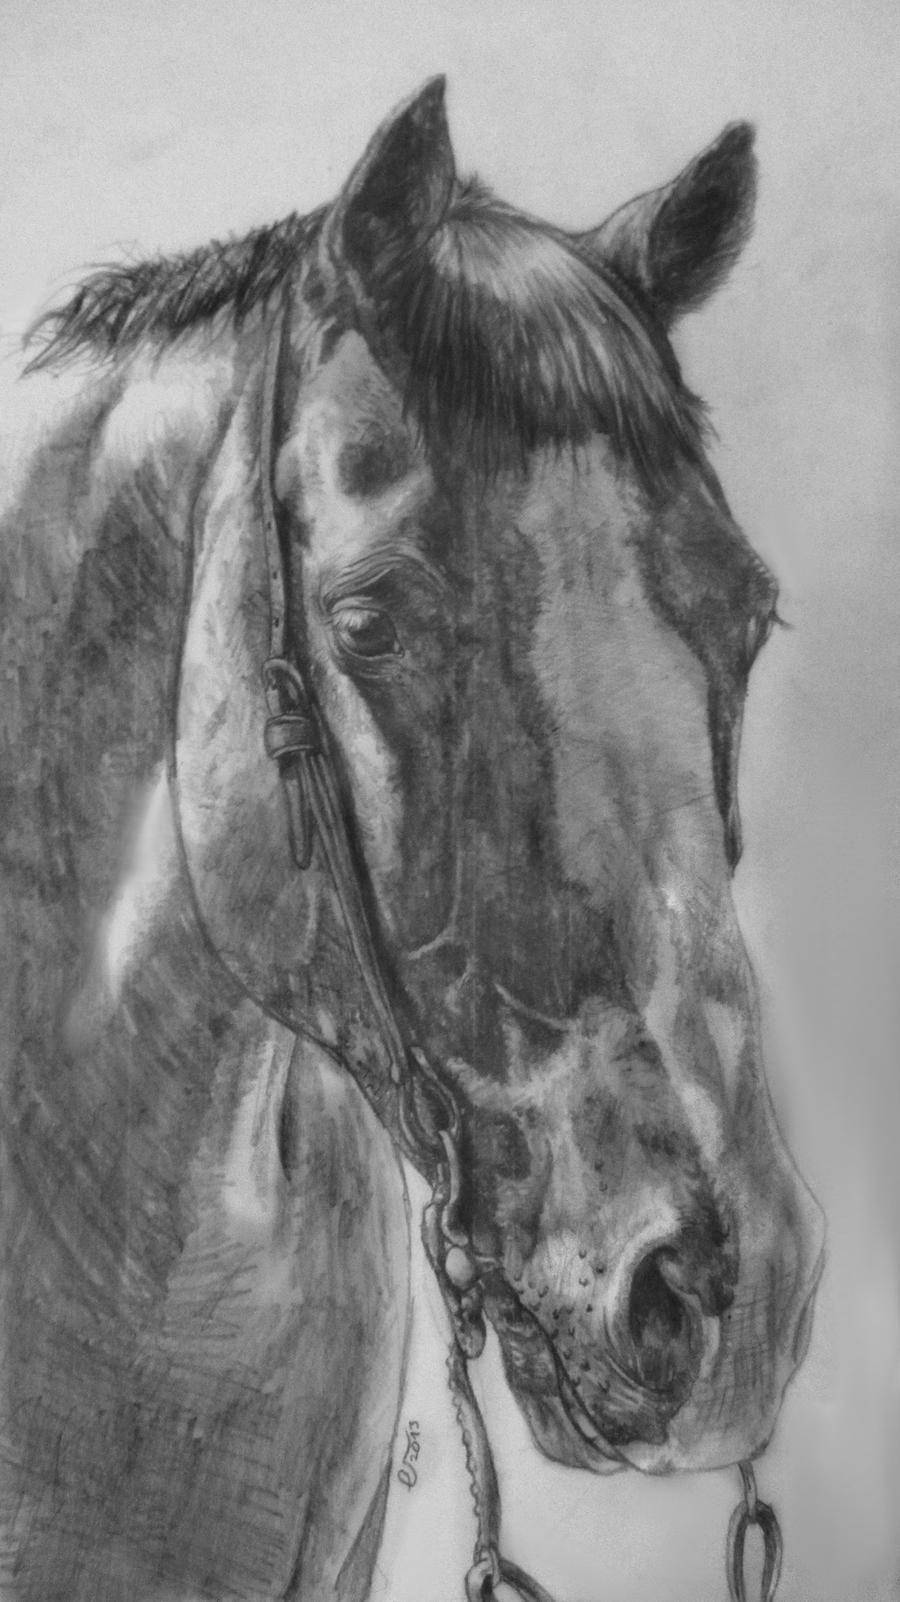 Quarter horse drawing - photo#25